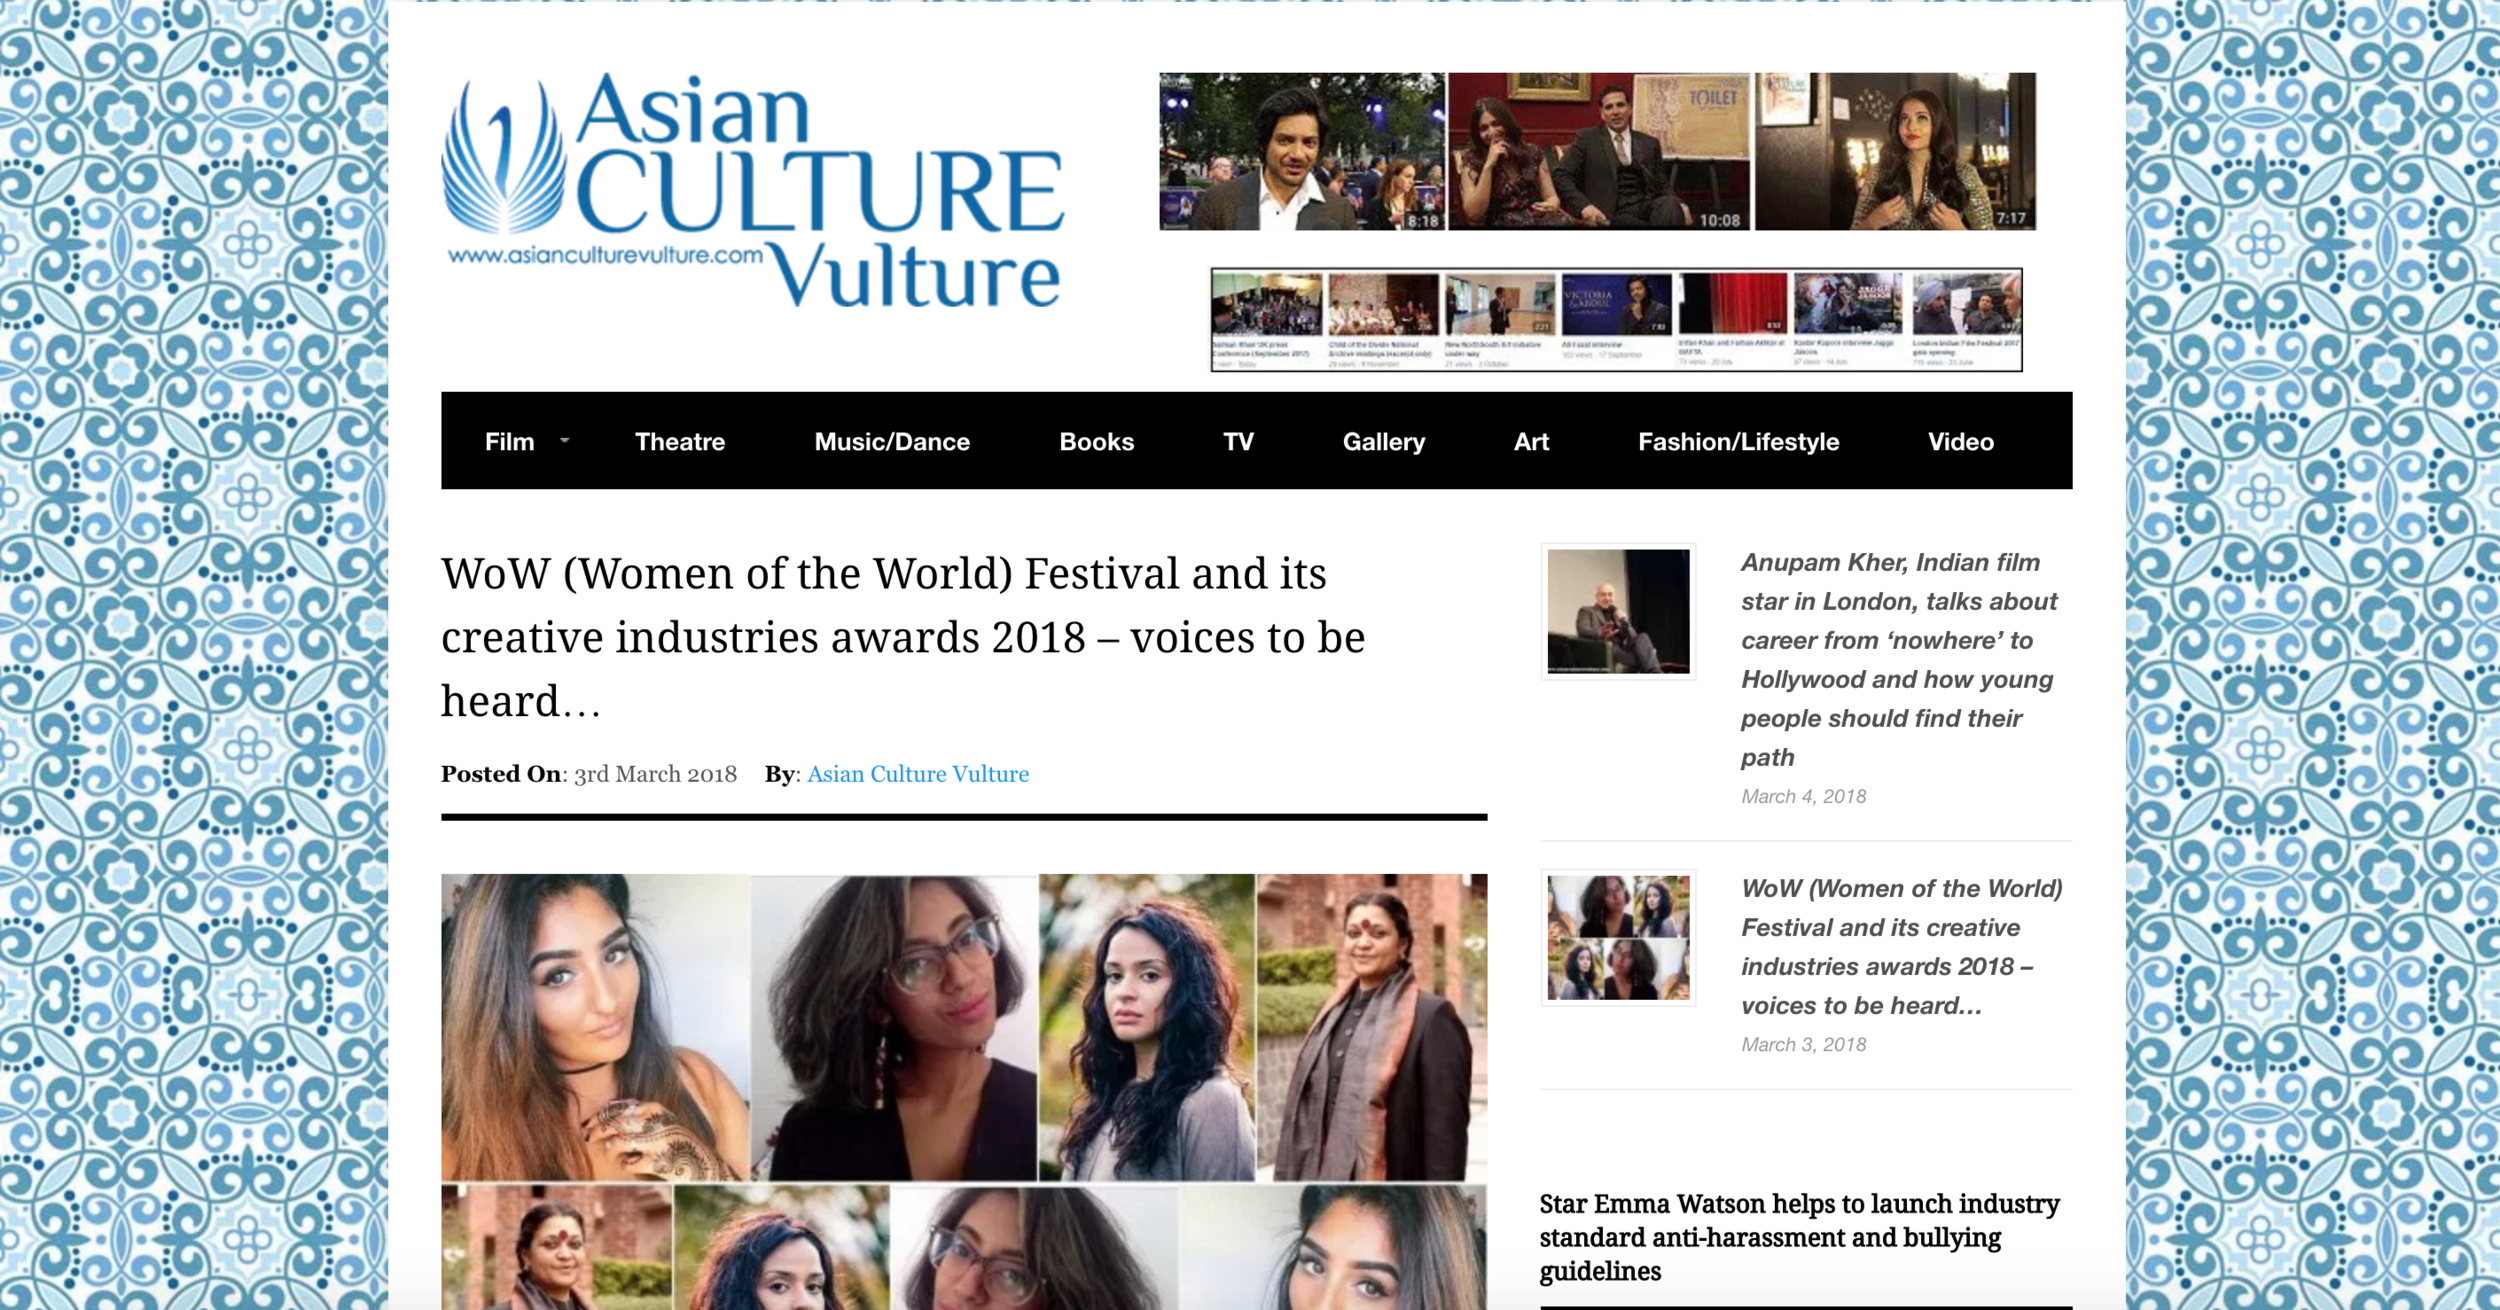 ASIAN CULTURE VULTURE  FEATURE  Asian Culture Vulture is an online arts and culture magazine founded to highlight and showcase creative work by South Asians living in the West. We are over the moon to have been recently featured alongside other south asians with our WOW UK nominations.